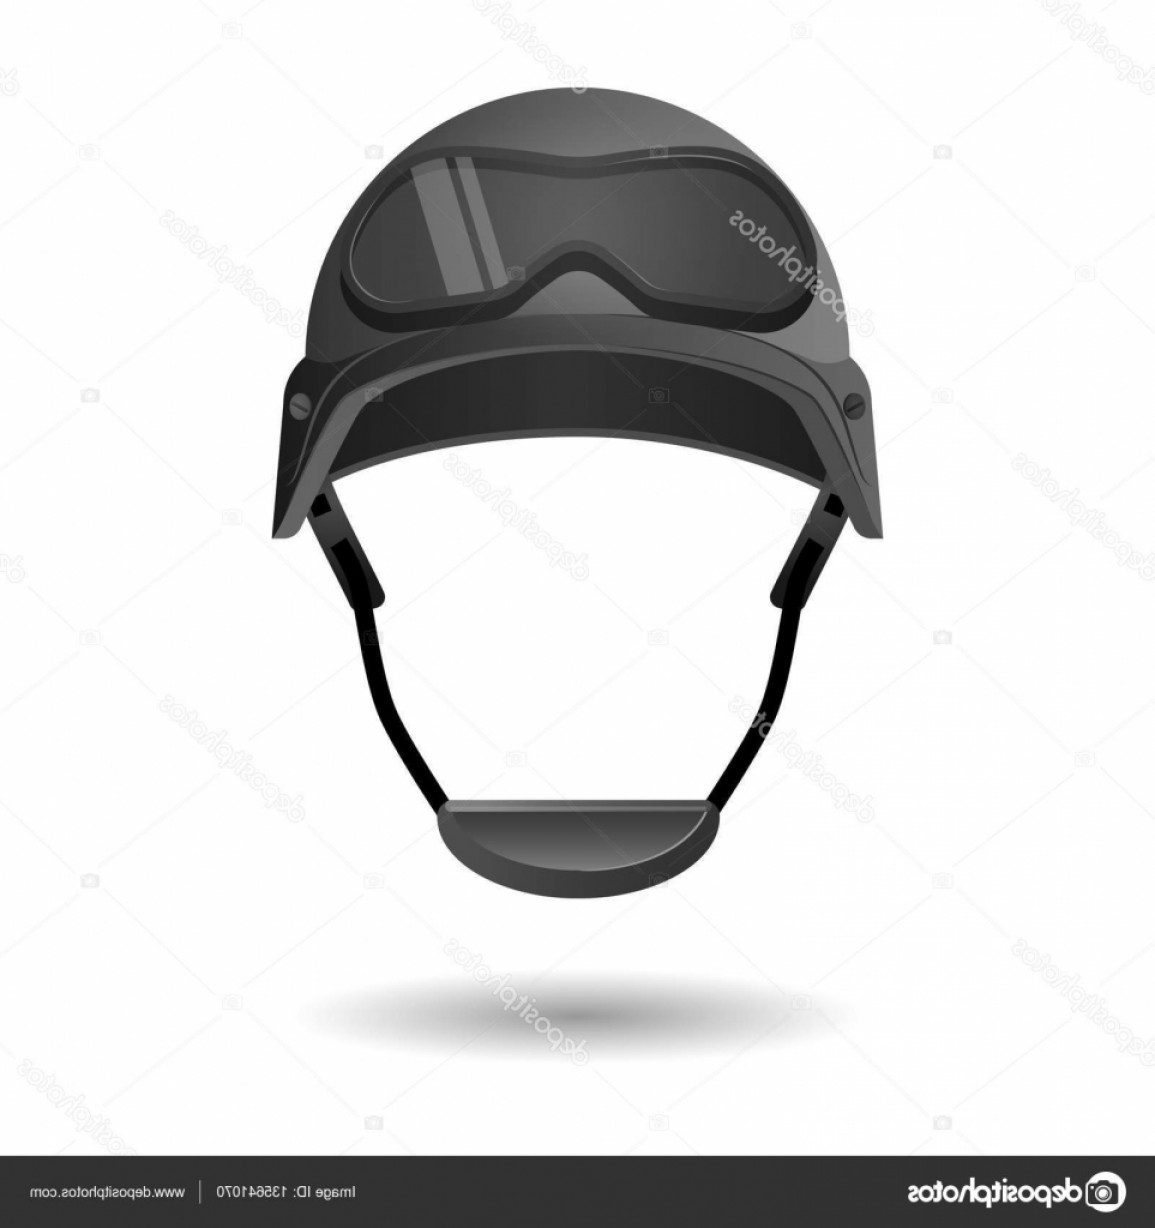 Fighter Helmet Vectors: Stock Illustration Army Helmet With Glasses Military